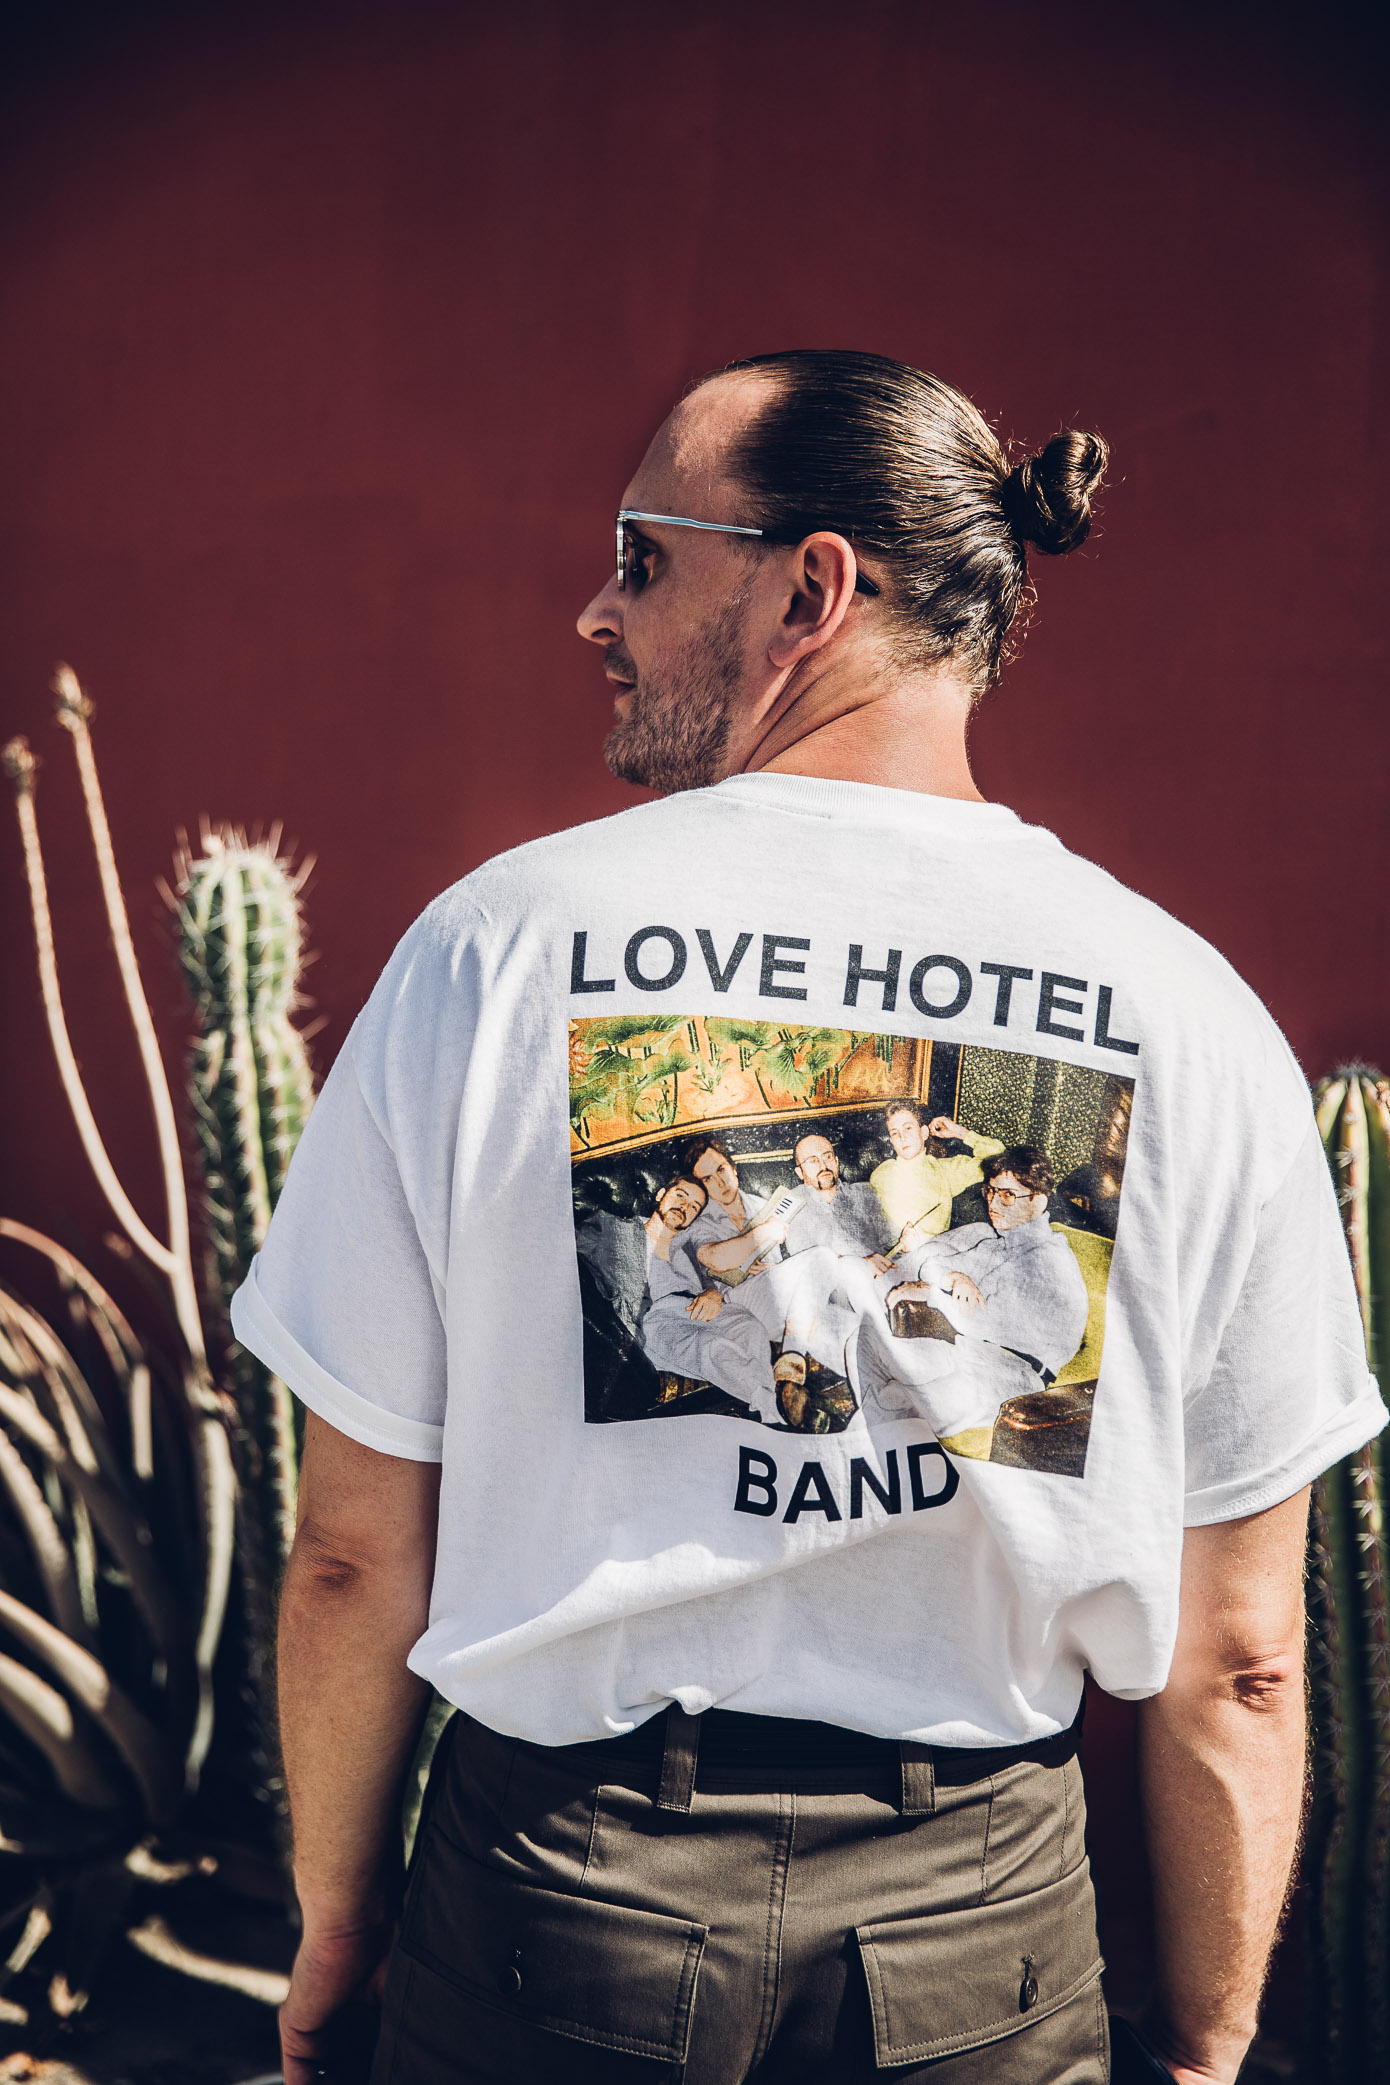 Aruba, Love Hotel Band , Editorial, Acne Studios, Teva, Robert La Roche, 032c